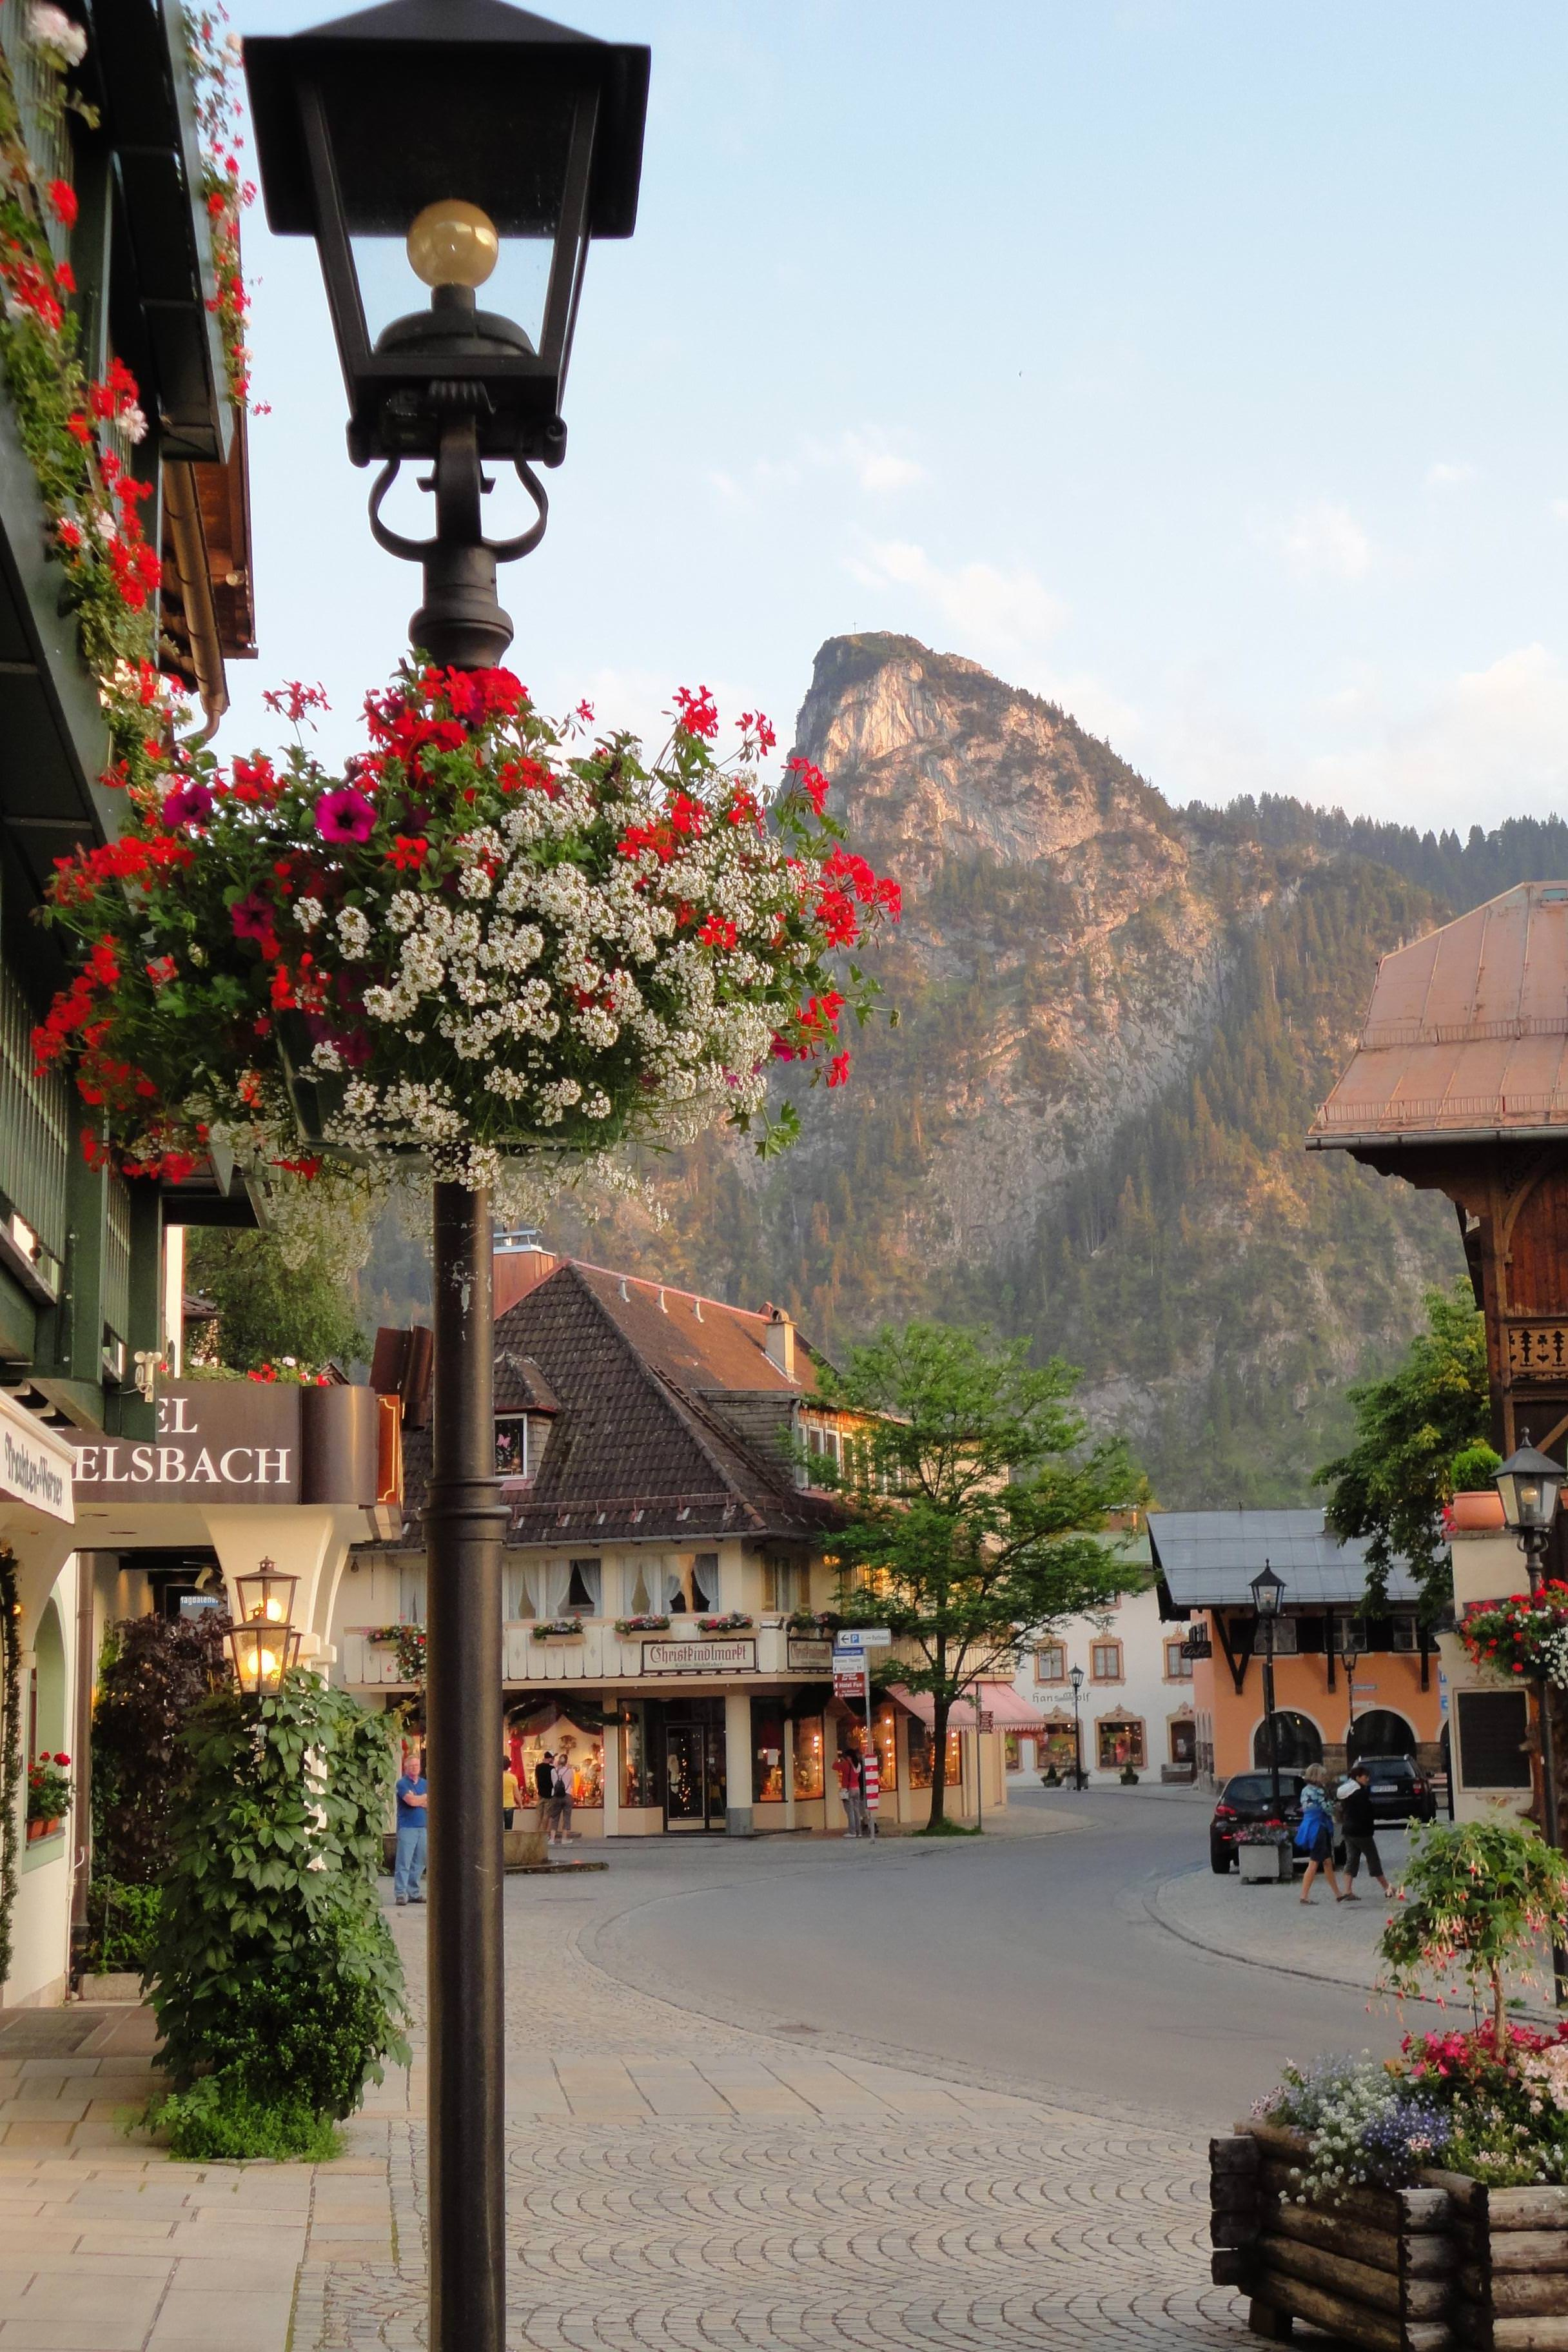 mountain city flowers house travel town street tourism vacation outdoors